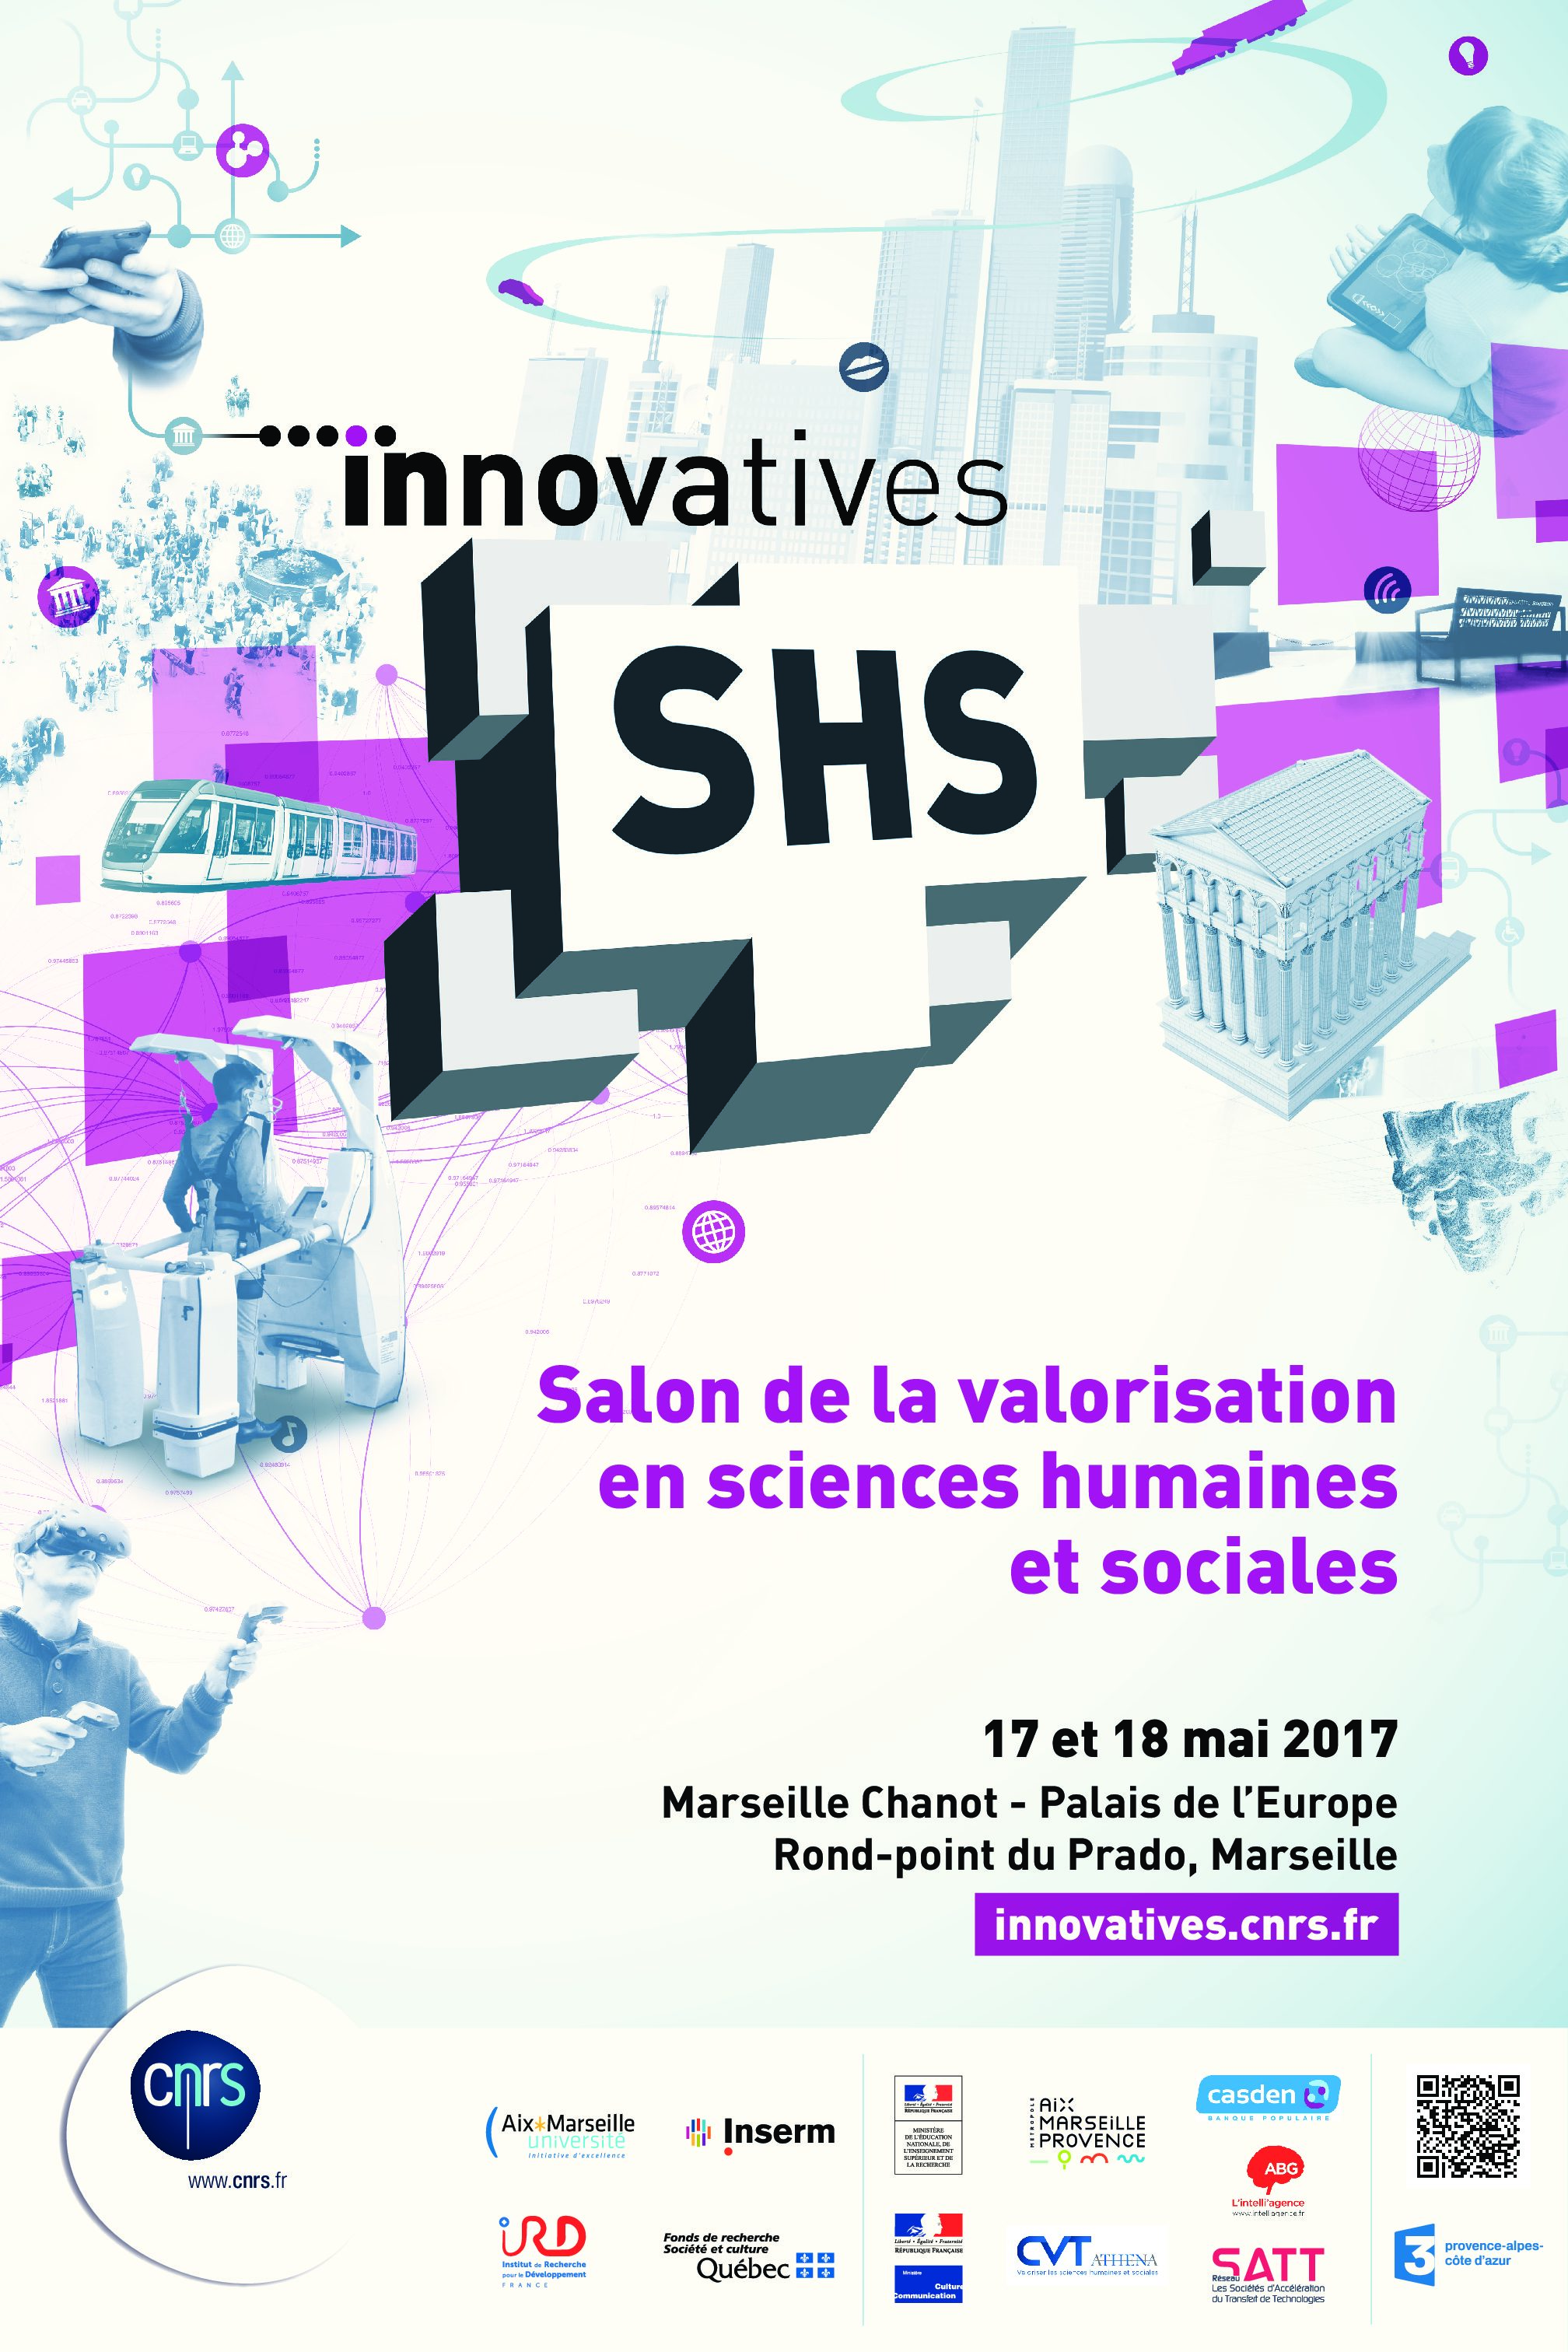 Innovatives SHS 2017 – 17-18/05/2017 – Marseille